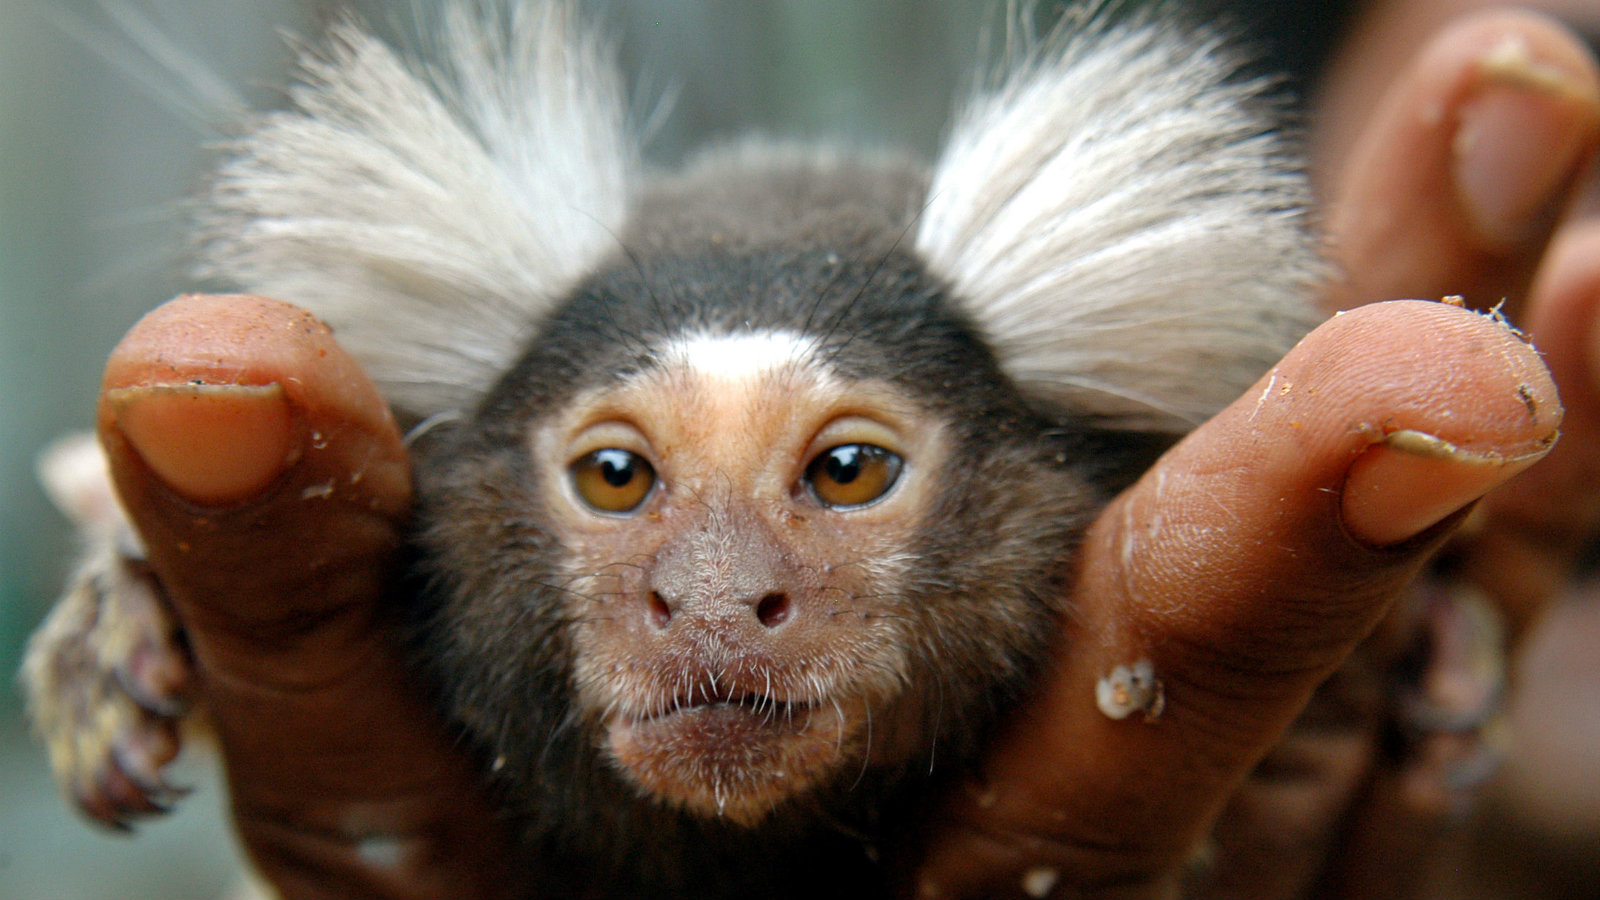 A forest officer shows a marmoset, a rare breed of monkey, in the southern Indian city of Chennai July 28, 2006.